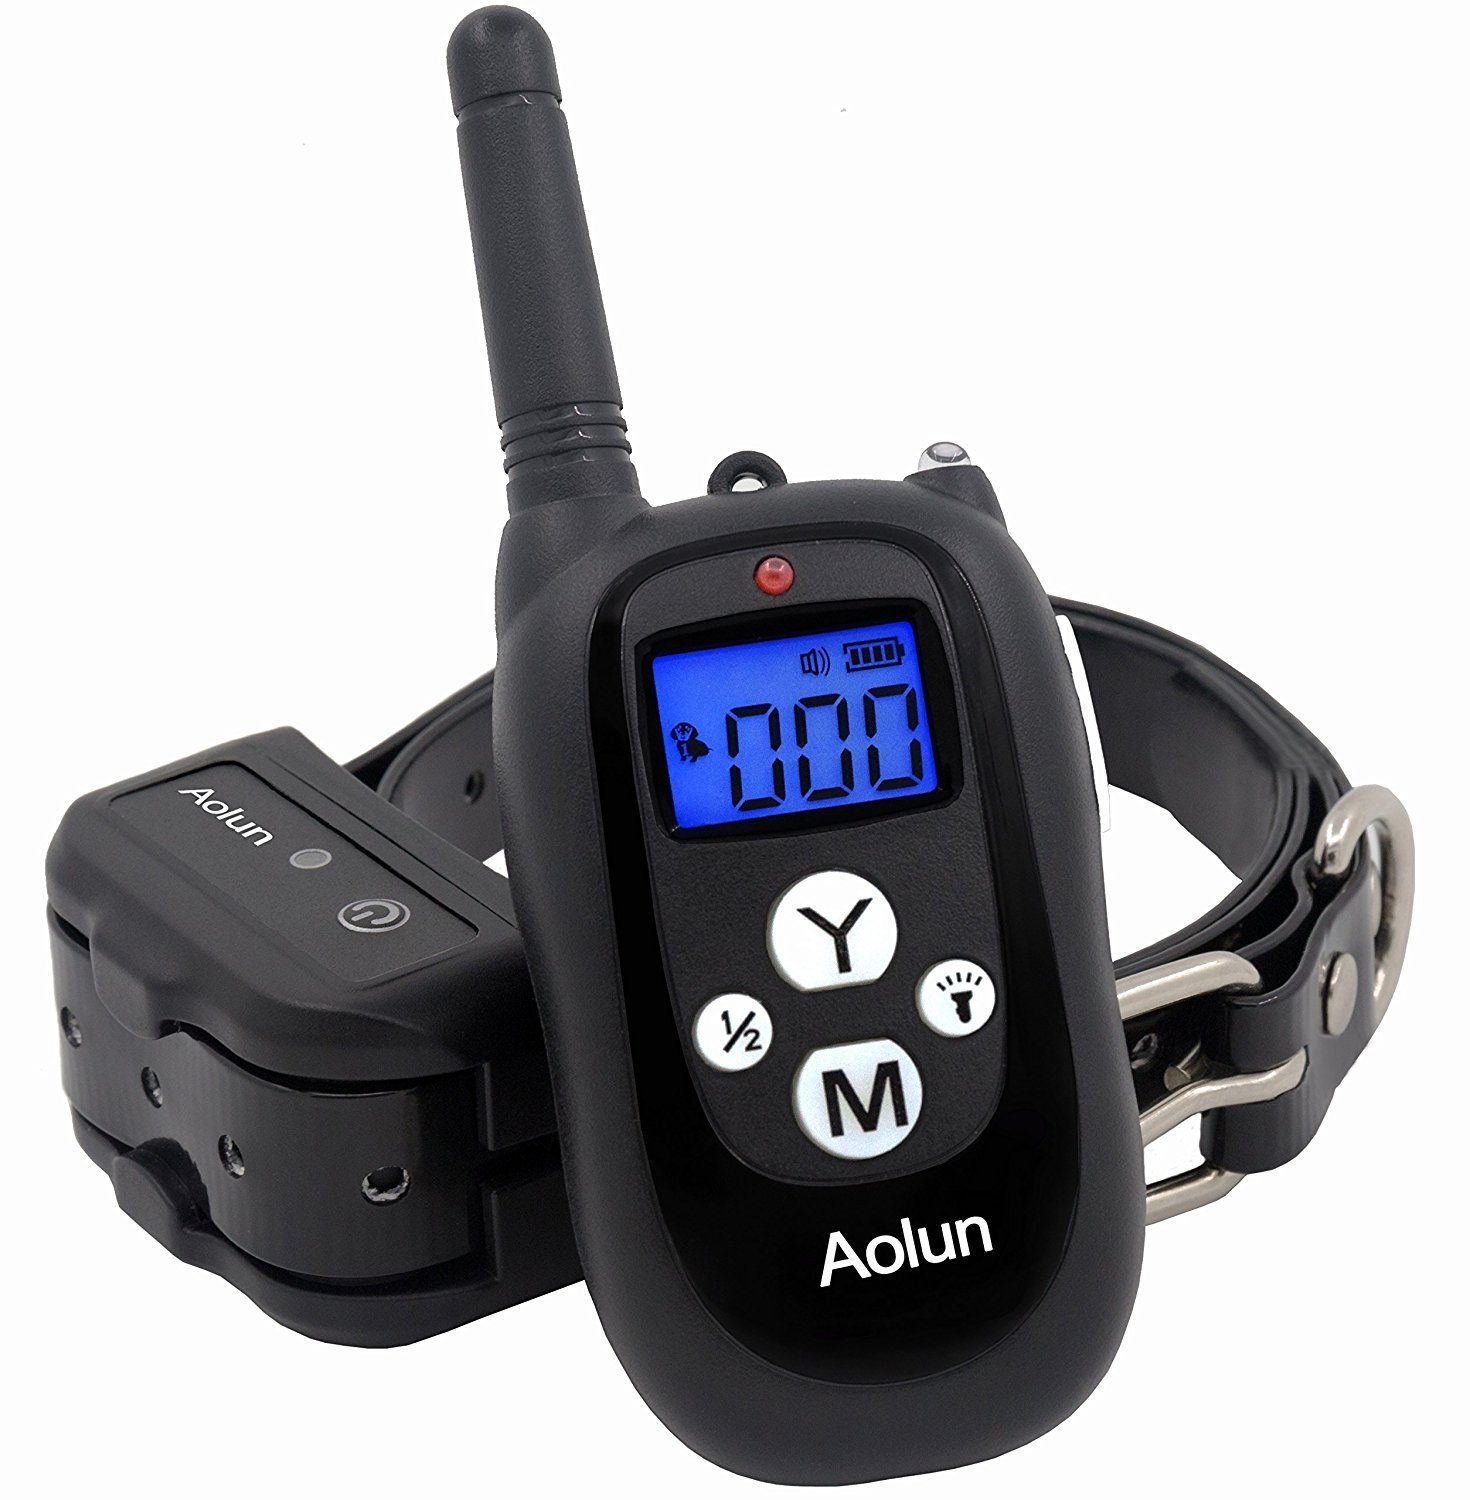 Shock Collar for Dogs,Dog Training Collar with Remote,LCD Display, 1000 Ft, Rechargeable, Waterproof Electric No Bark Dog Collar with Beep/Vibration/Shock - Great for Dogs